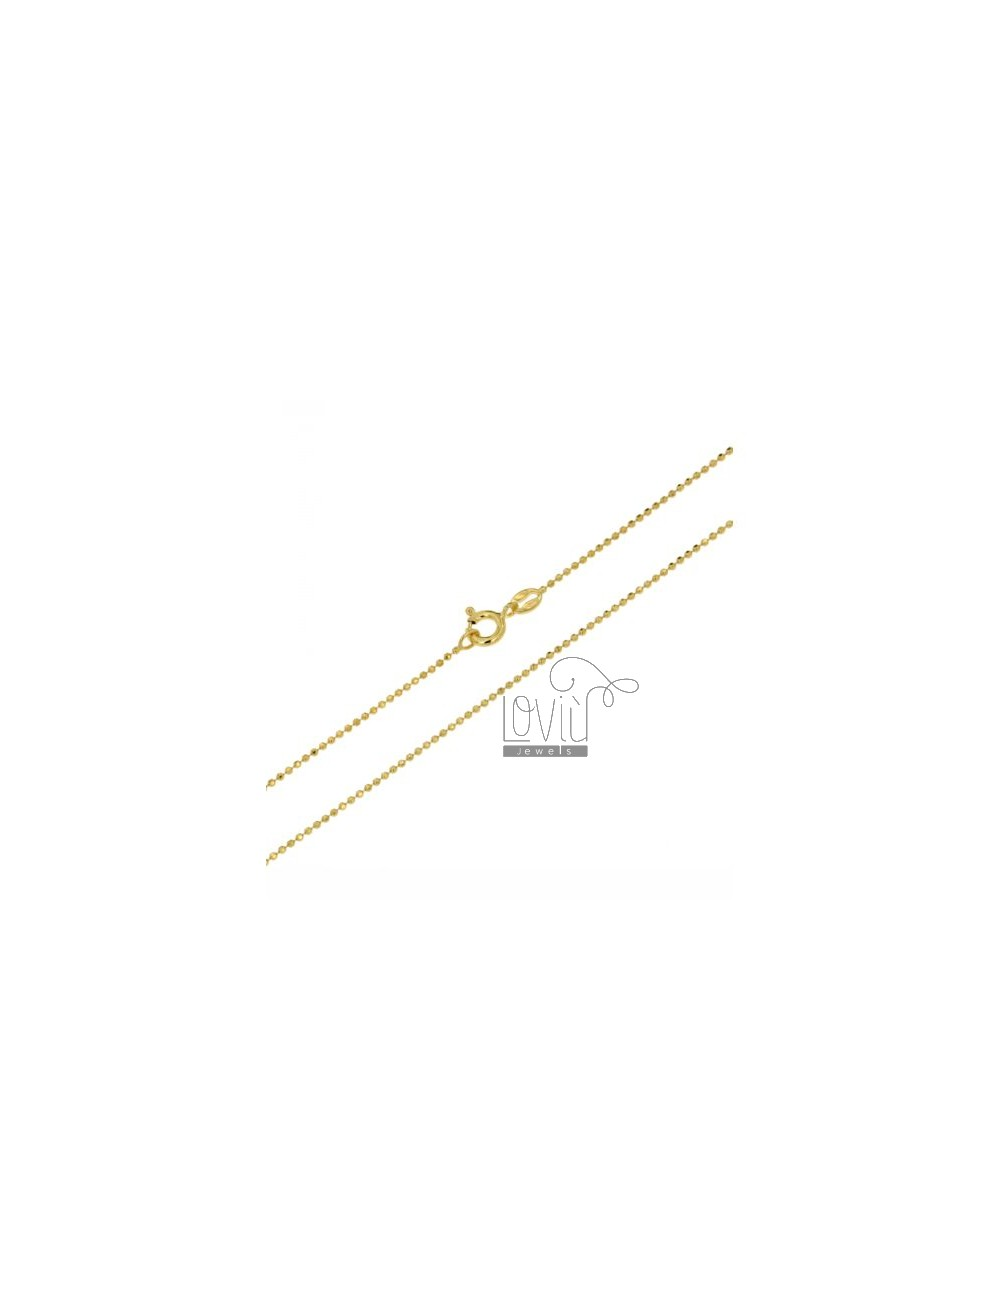 BALL CHAIN &8203&82031.2 MM YELLOW GOLD PLATED faceted CM 70 IN TIT AG 925